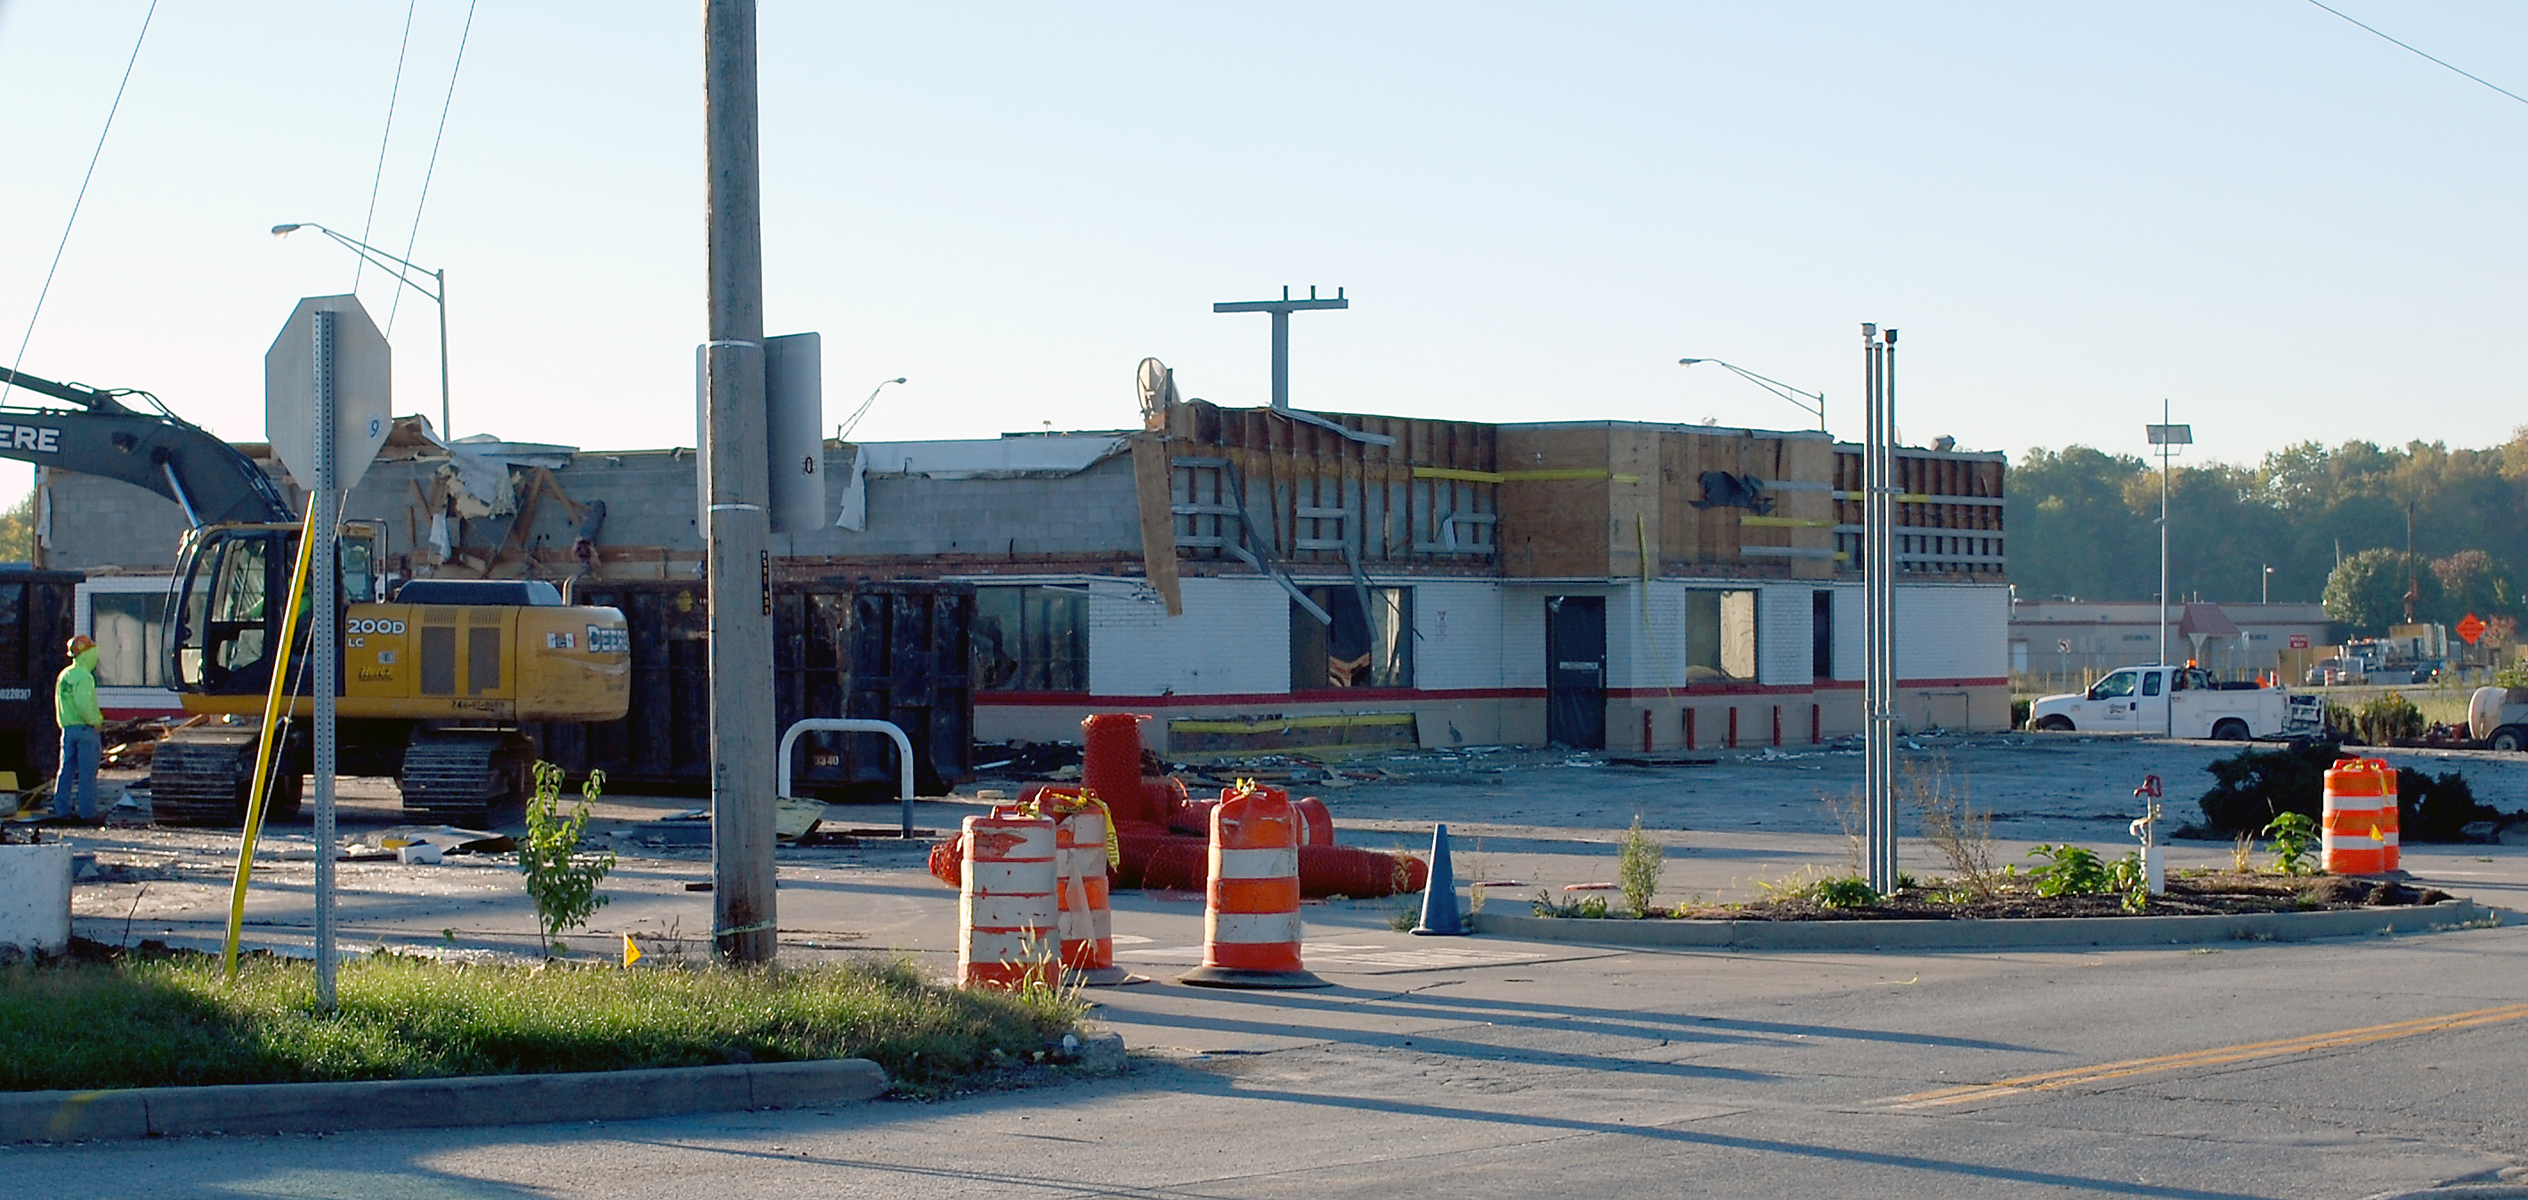 Demolition and site work begins at the U.S. 31-Ind. 32 intersection at the former Shell gas station and McDonald's. (Photo by Robert Herrington)